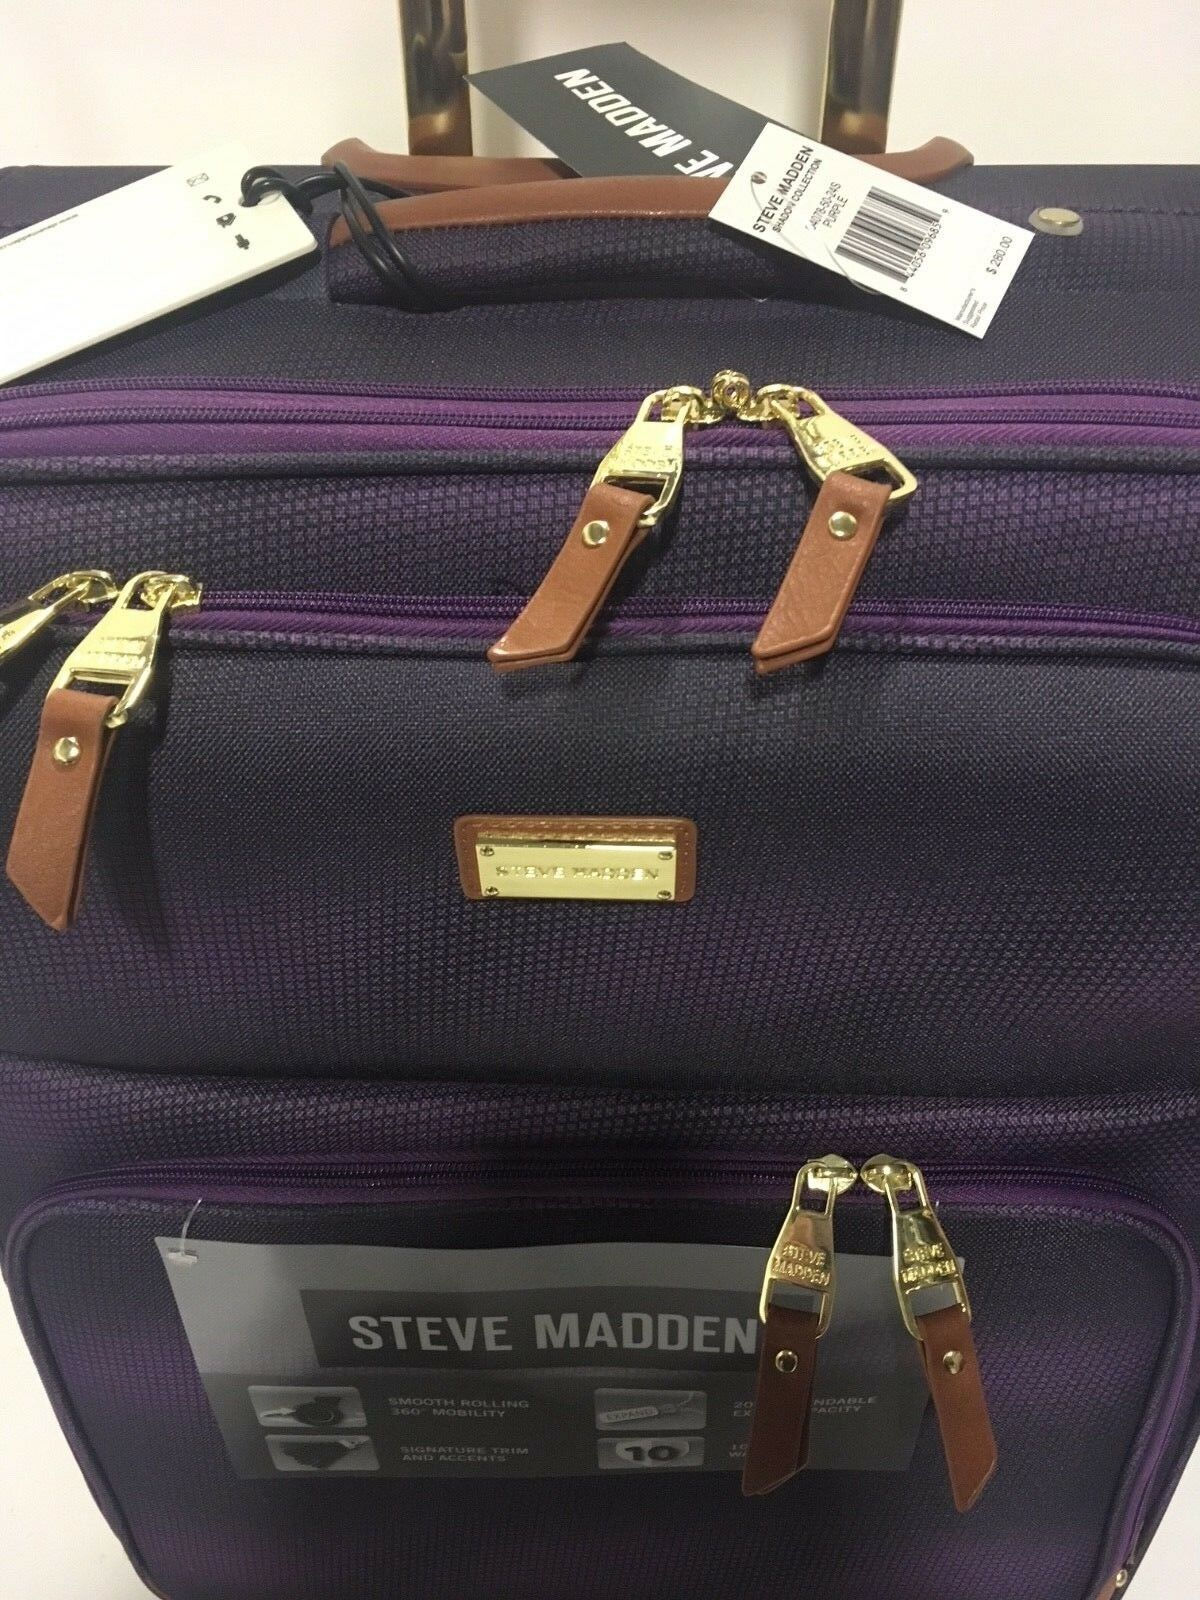 NEW 3PC STEVE MADDEN SPINNER SHADOW COLLECTION LUGGAGE SET 840 PURPLE - $239.95